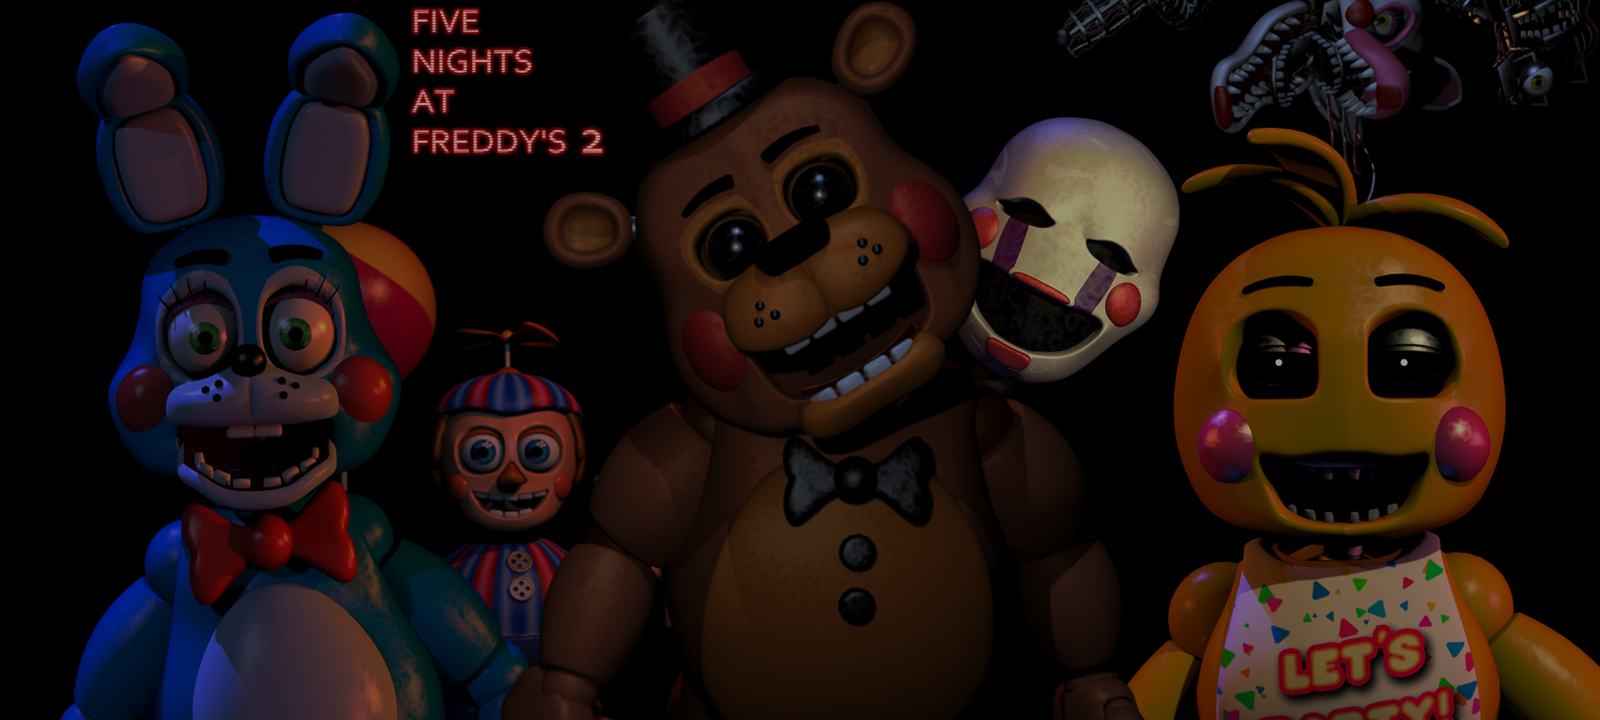 Five nights at freddy s 2 toy wallpaper by elsa shadow on deviantart